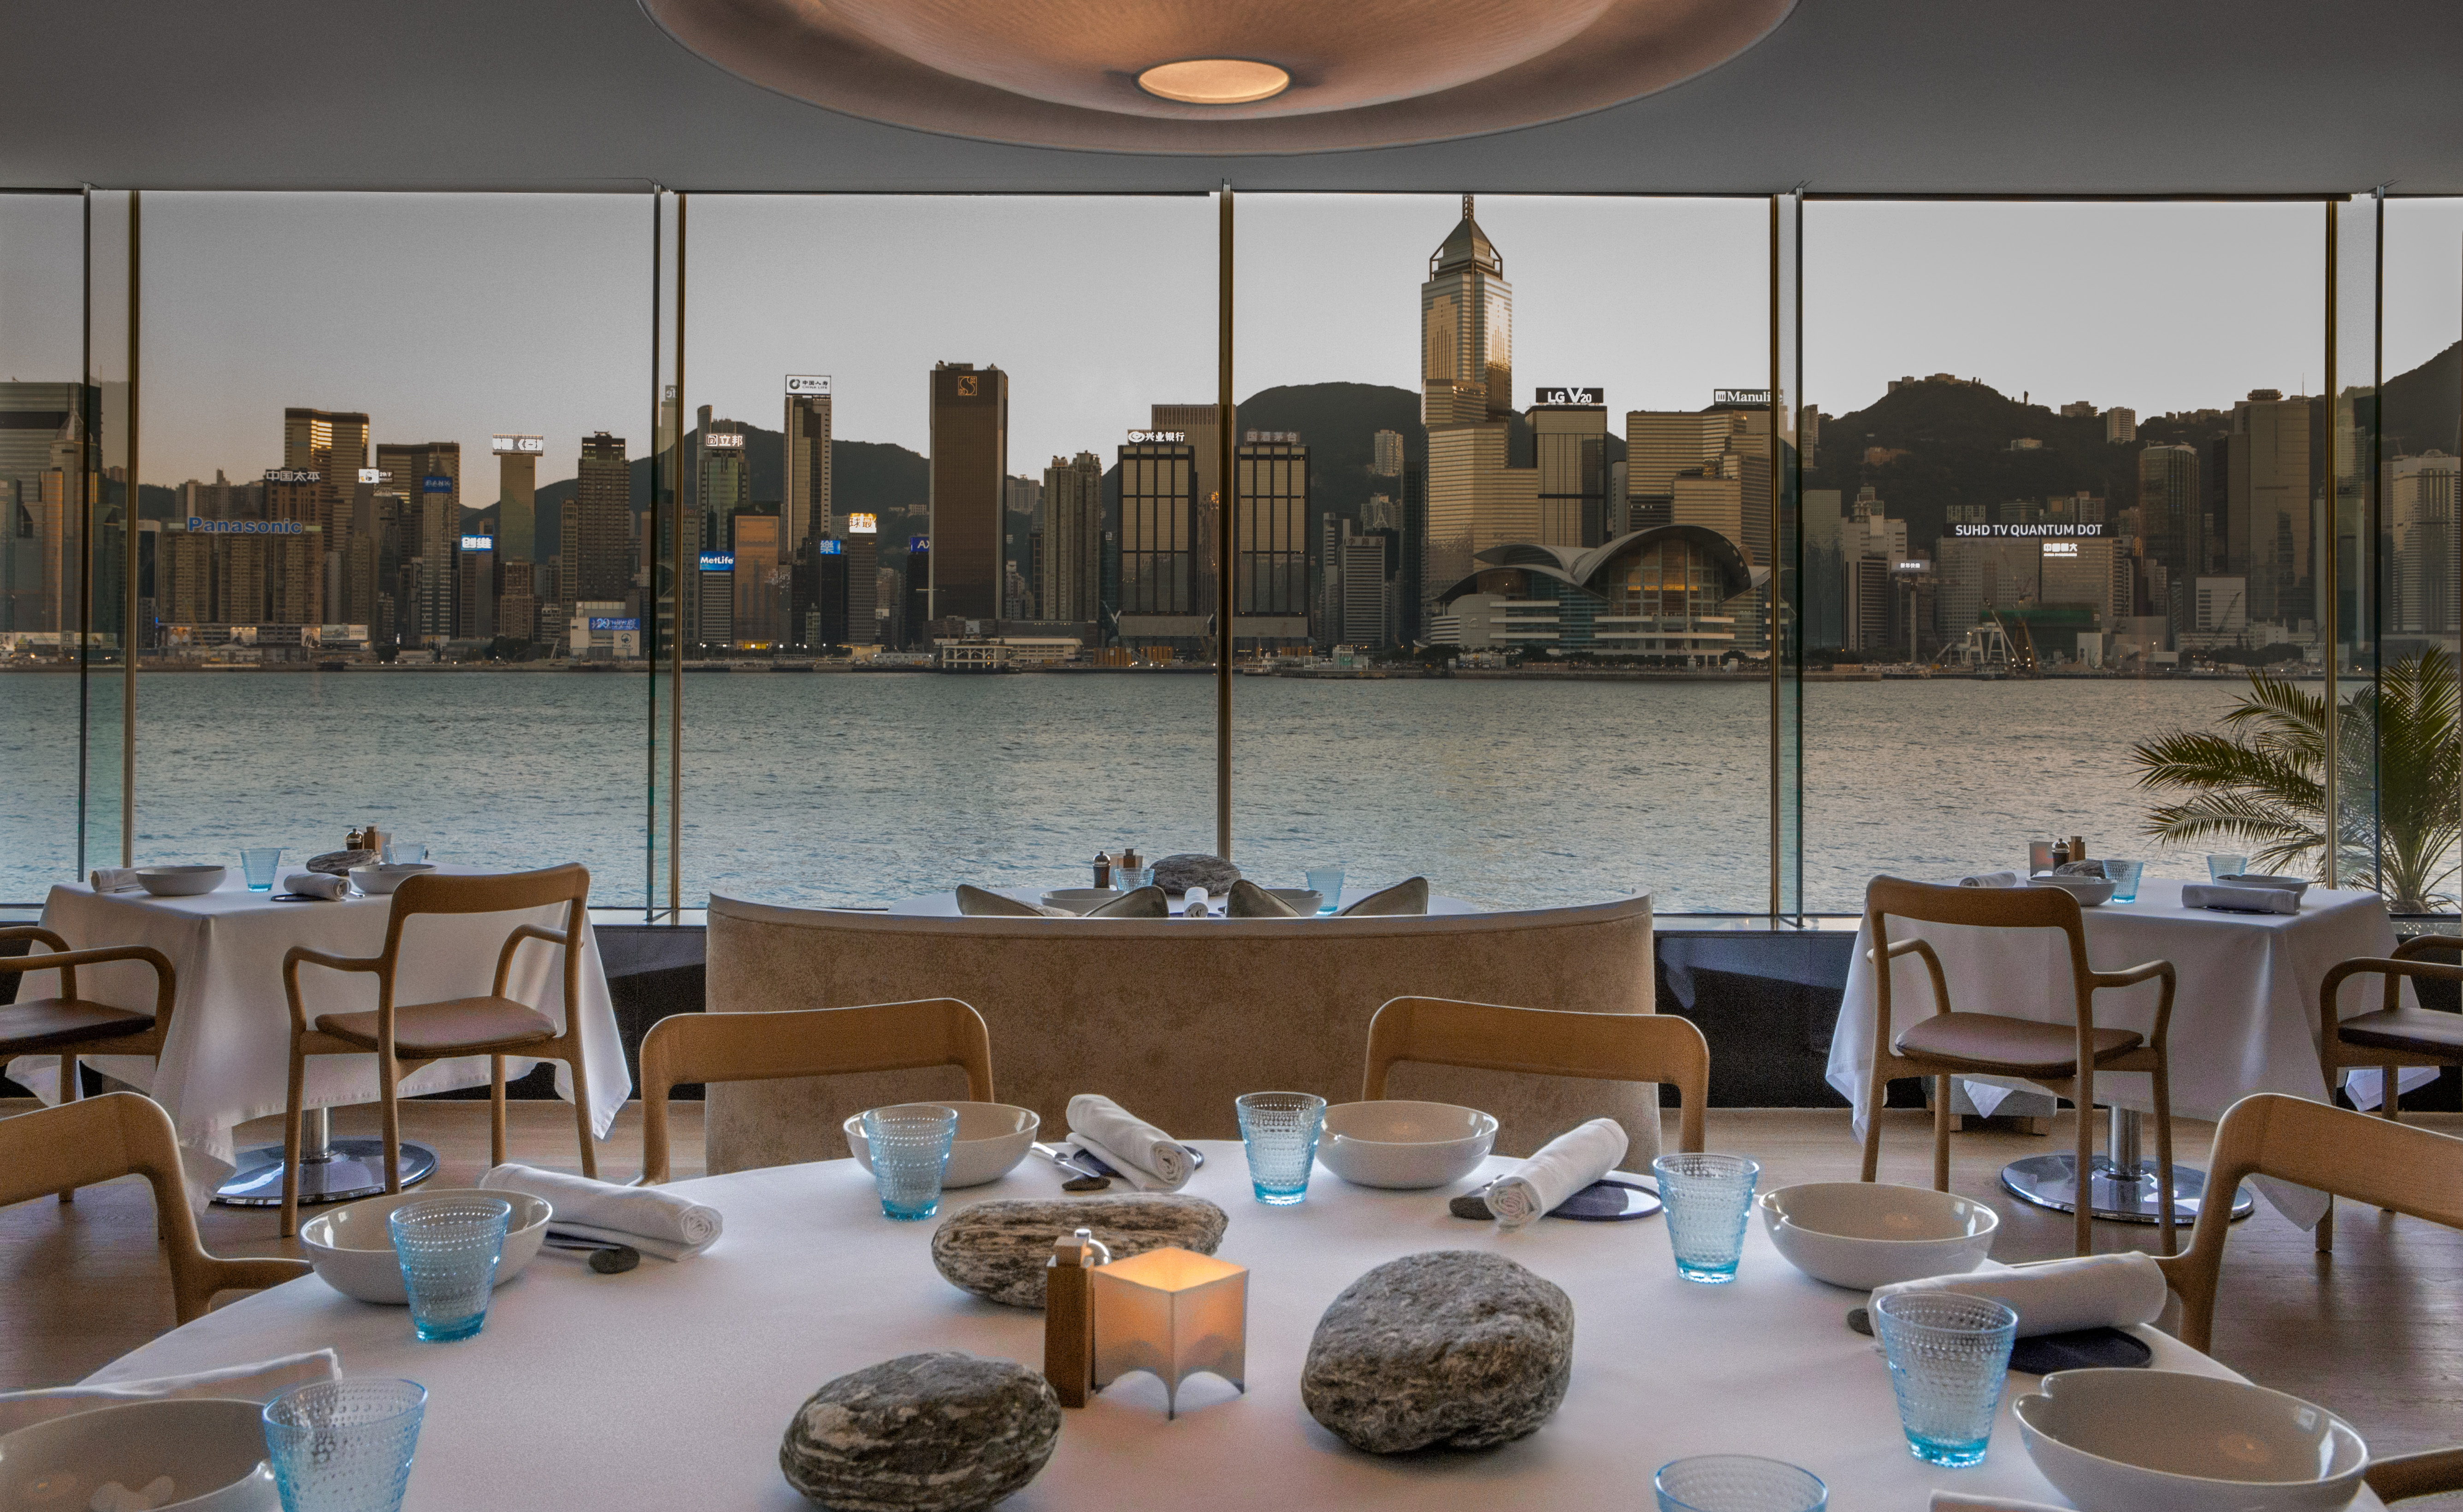 rech-by-alain-ducasse---interior-with-harbourview-2-pierre-monetta_32216319784_o.jpg